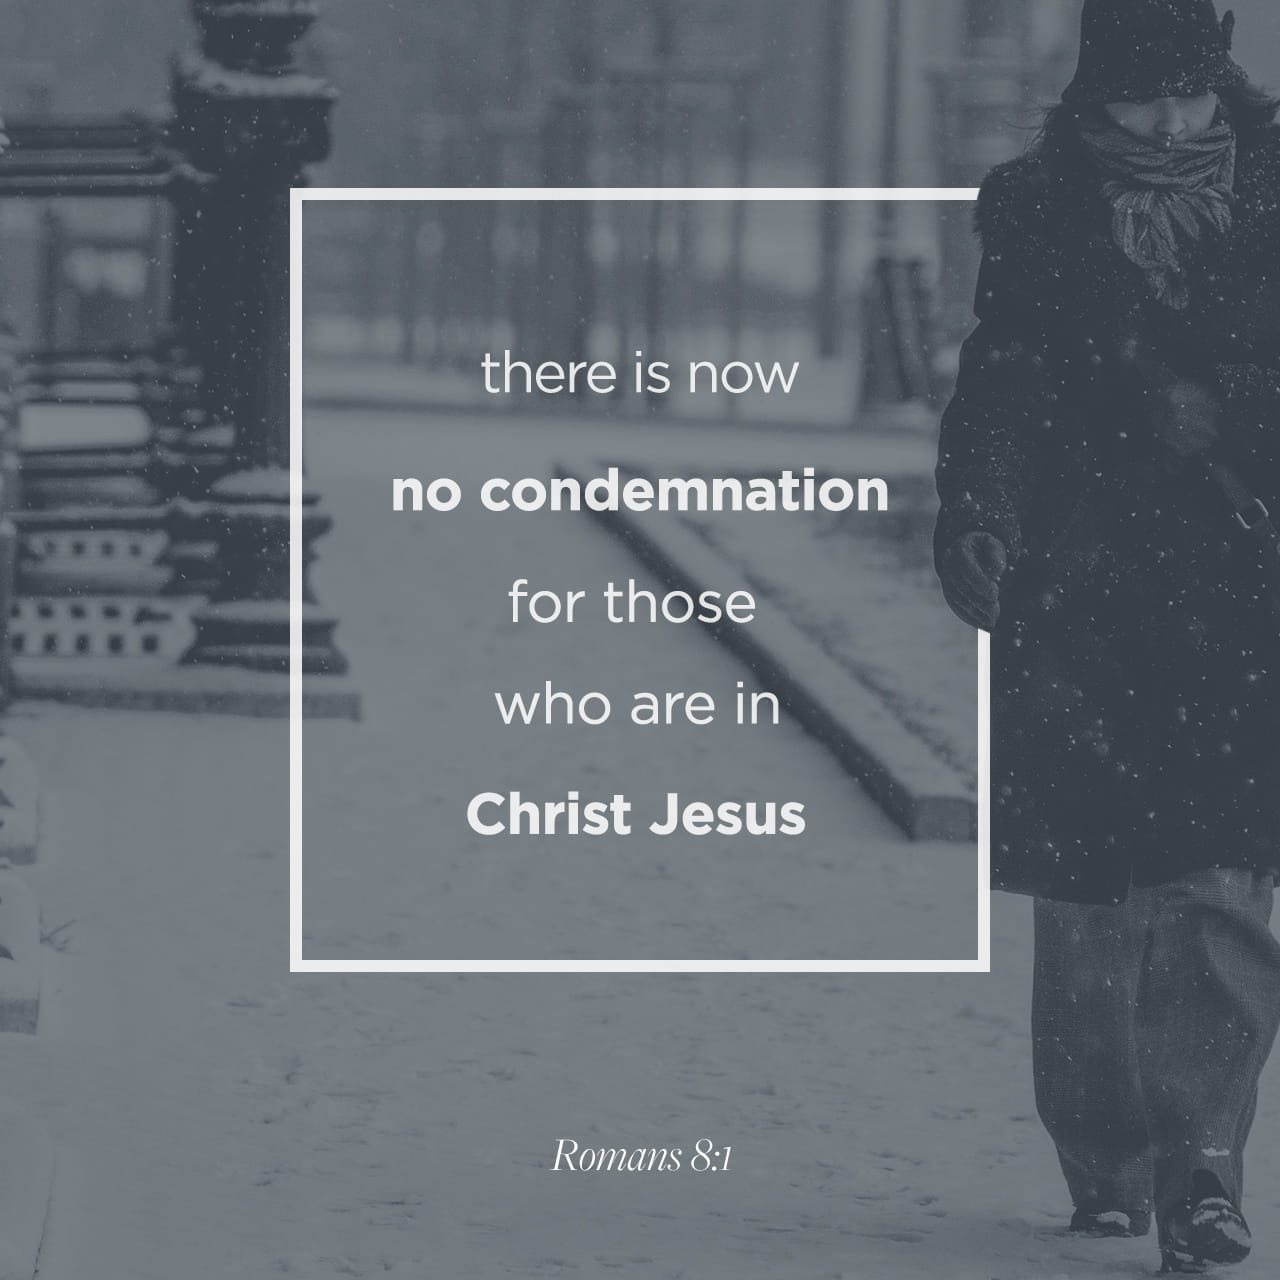 Romans 8:2 For the law of the Spirit of life in Christ Jesus has